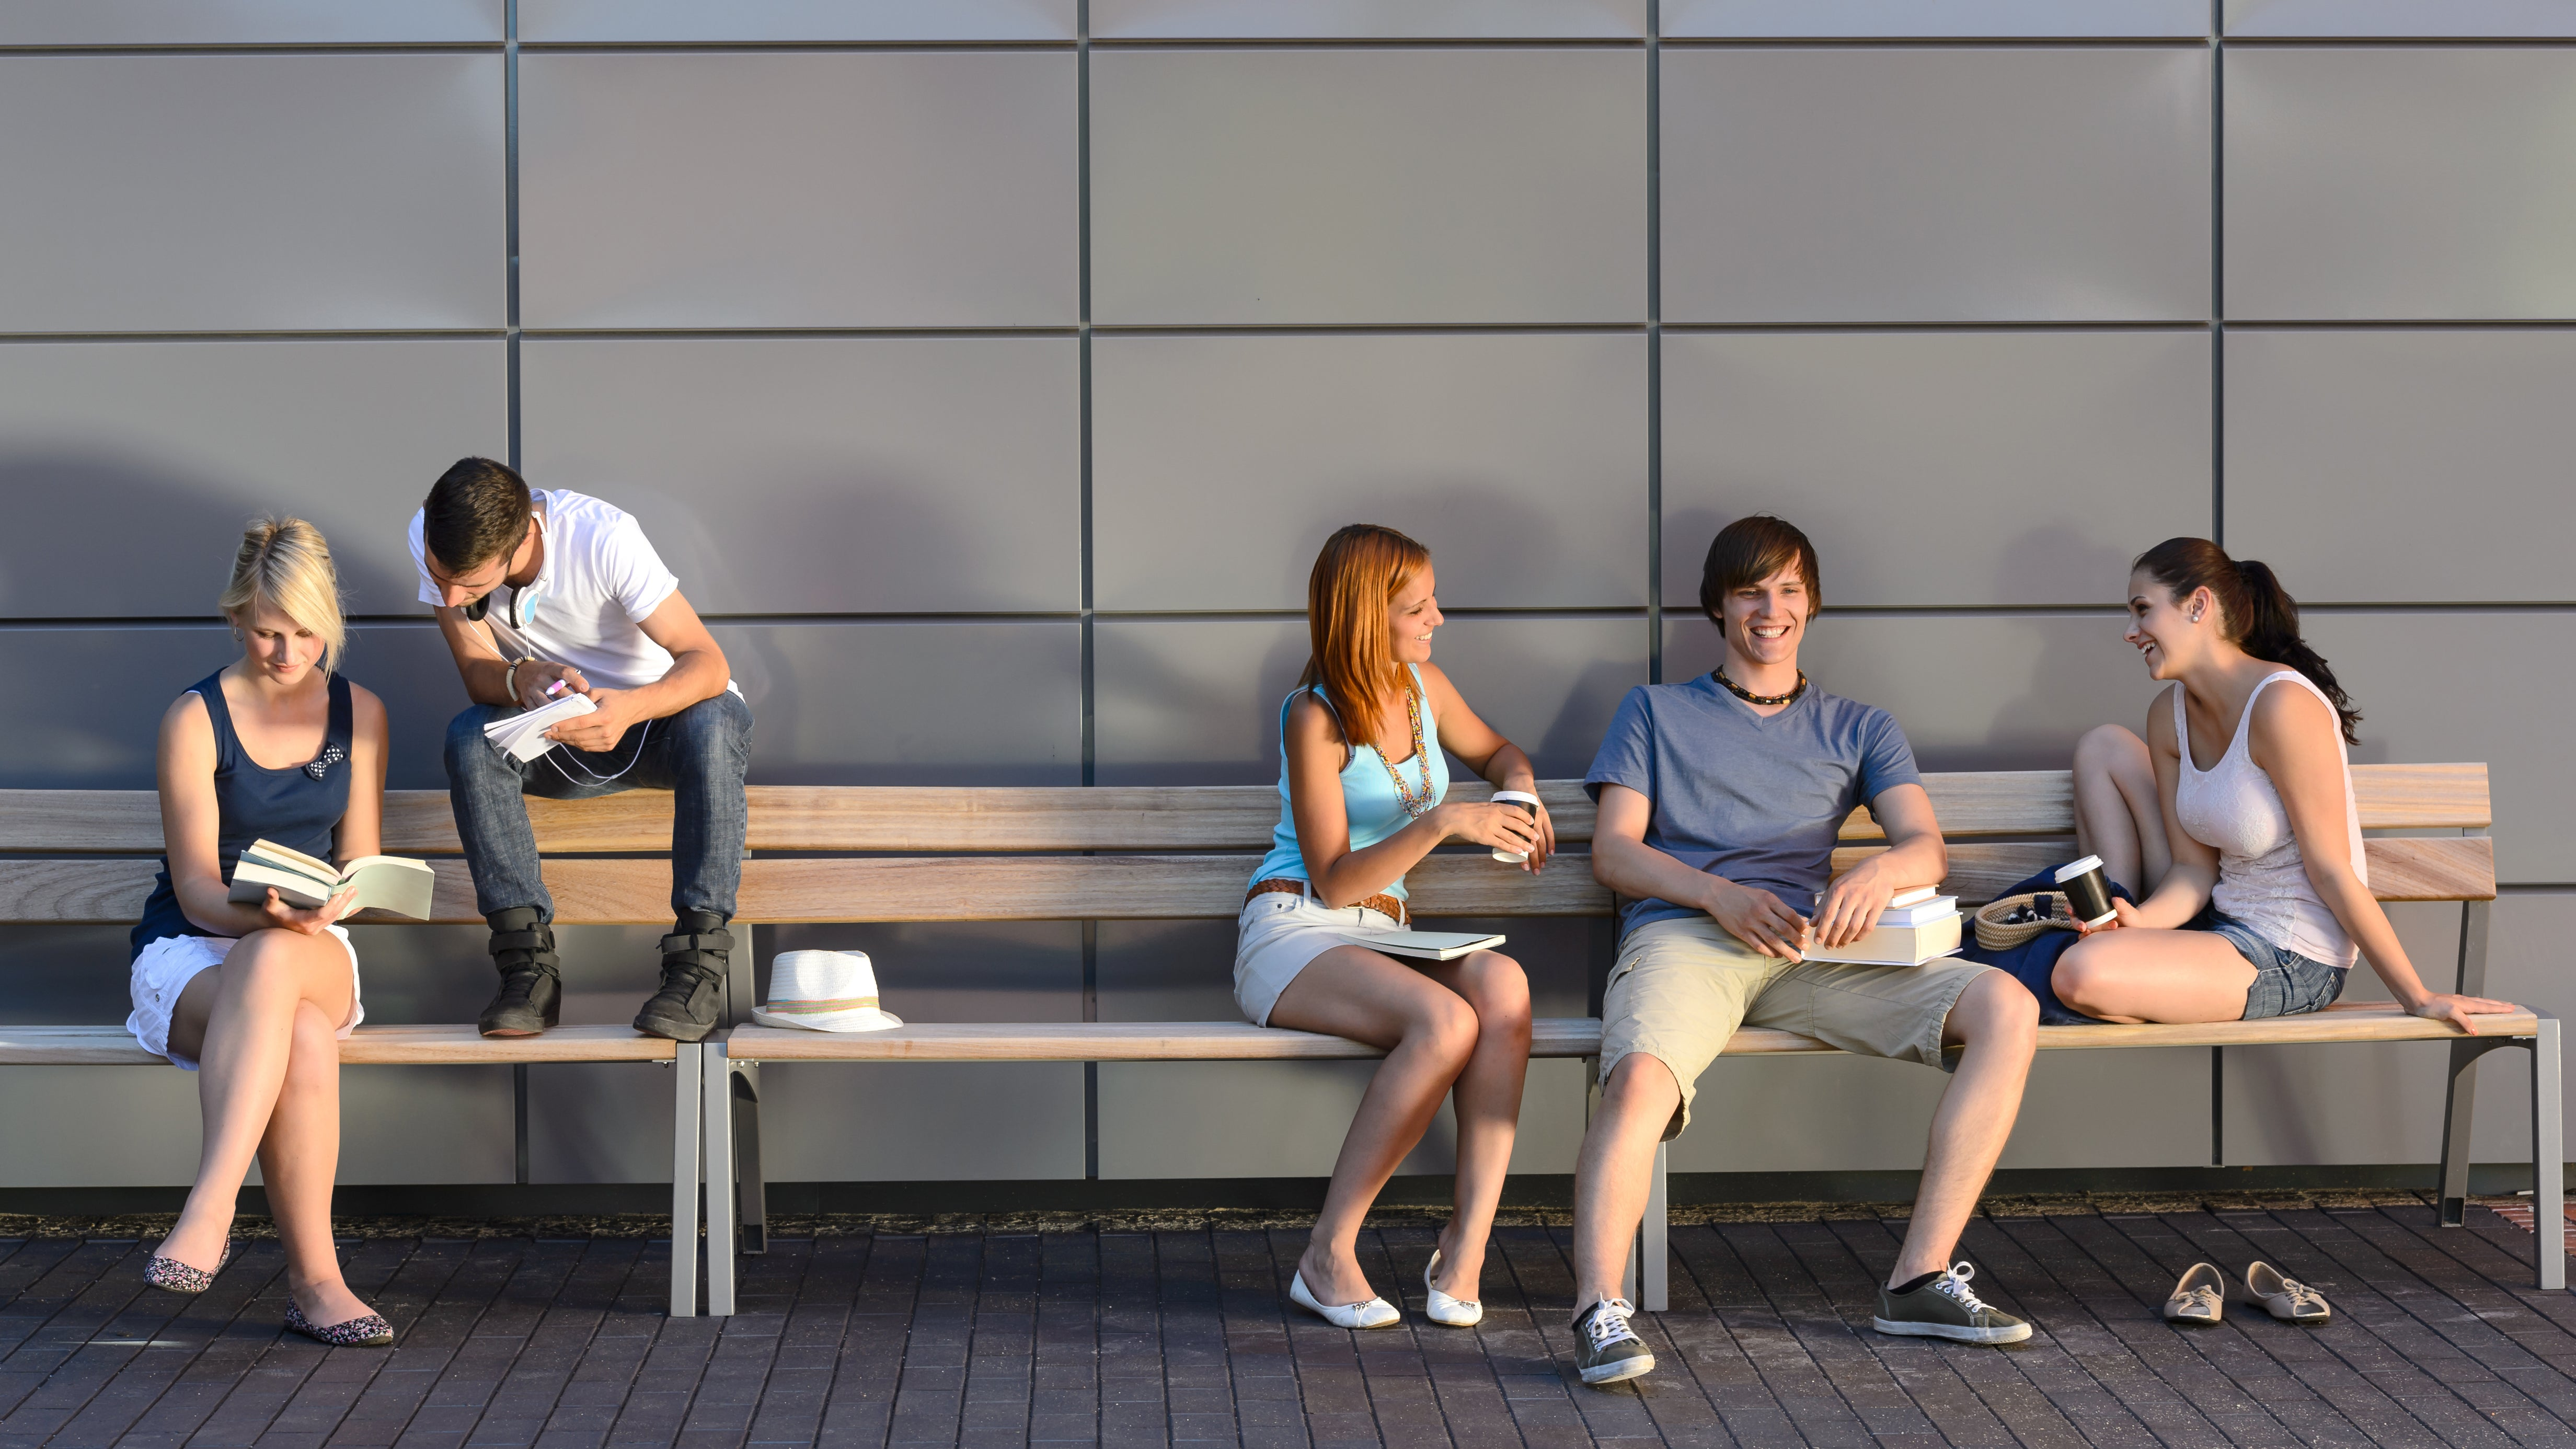 New Data Suggests You Only Have Five Close Friends